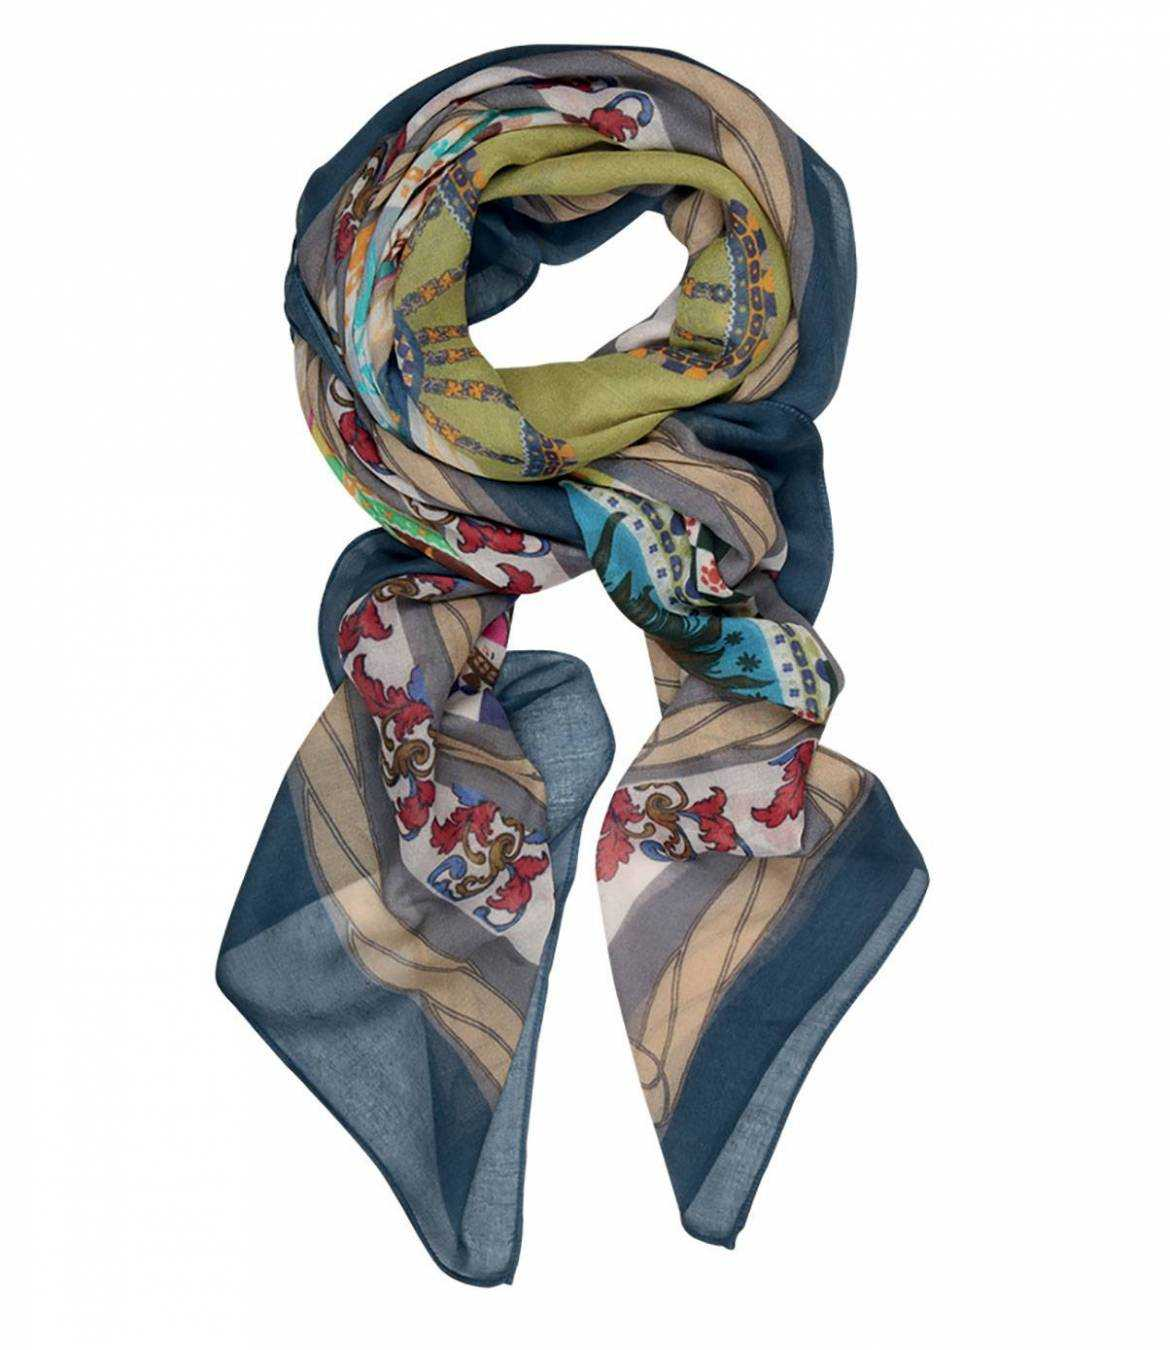 CANI Cotton scarf, Women's Modal 140 x 140 cm Storiatipic - 1